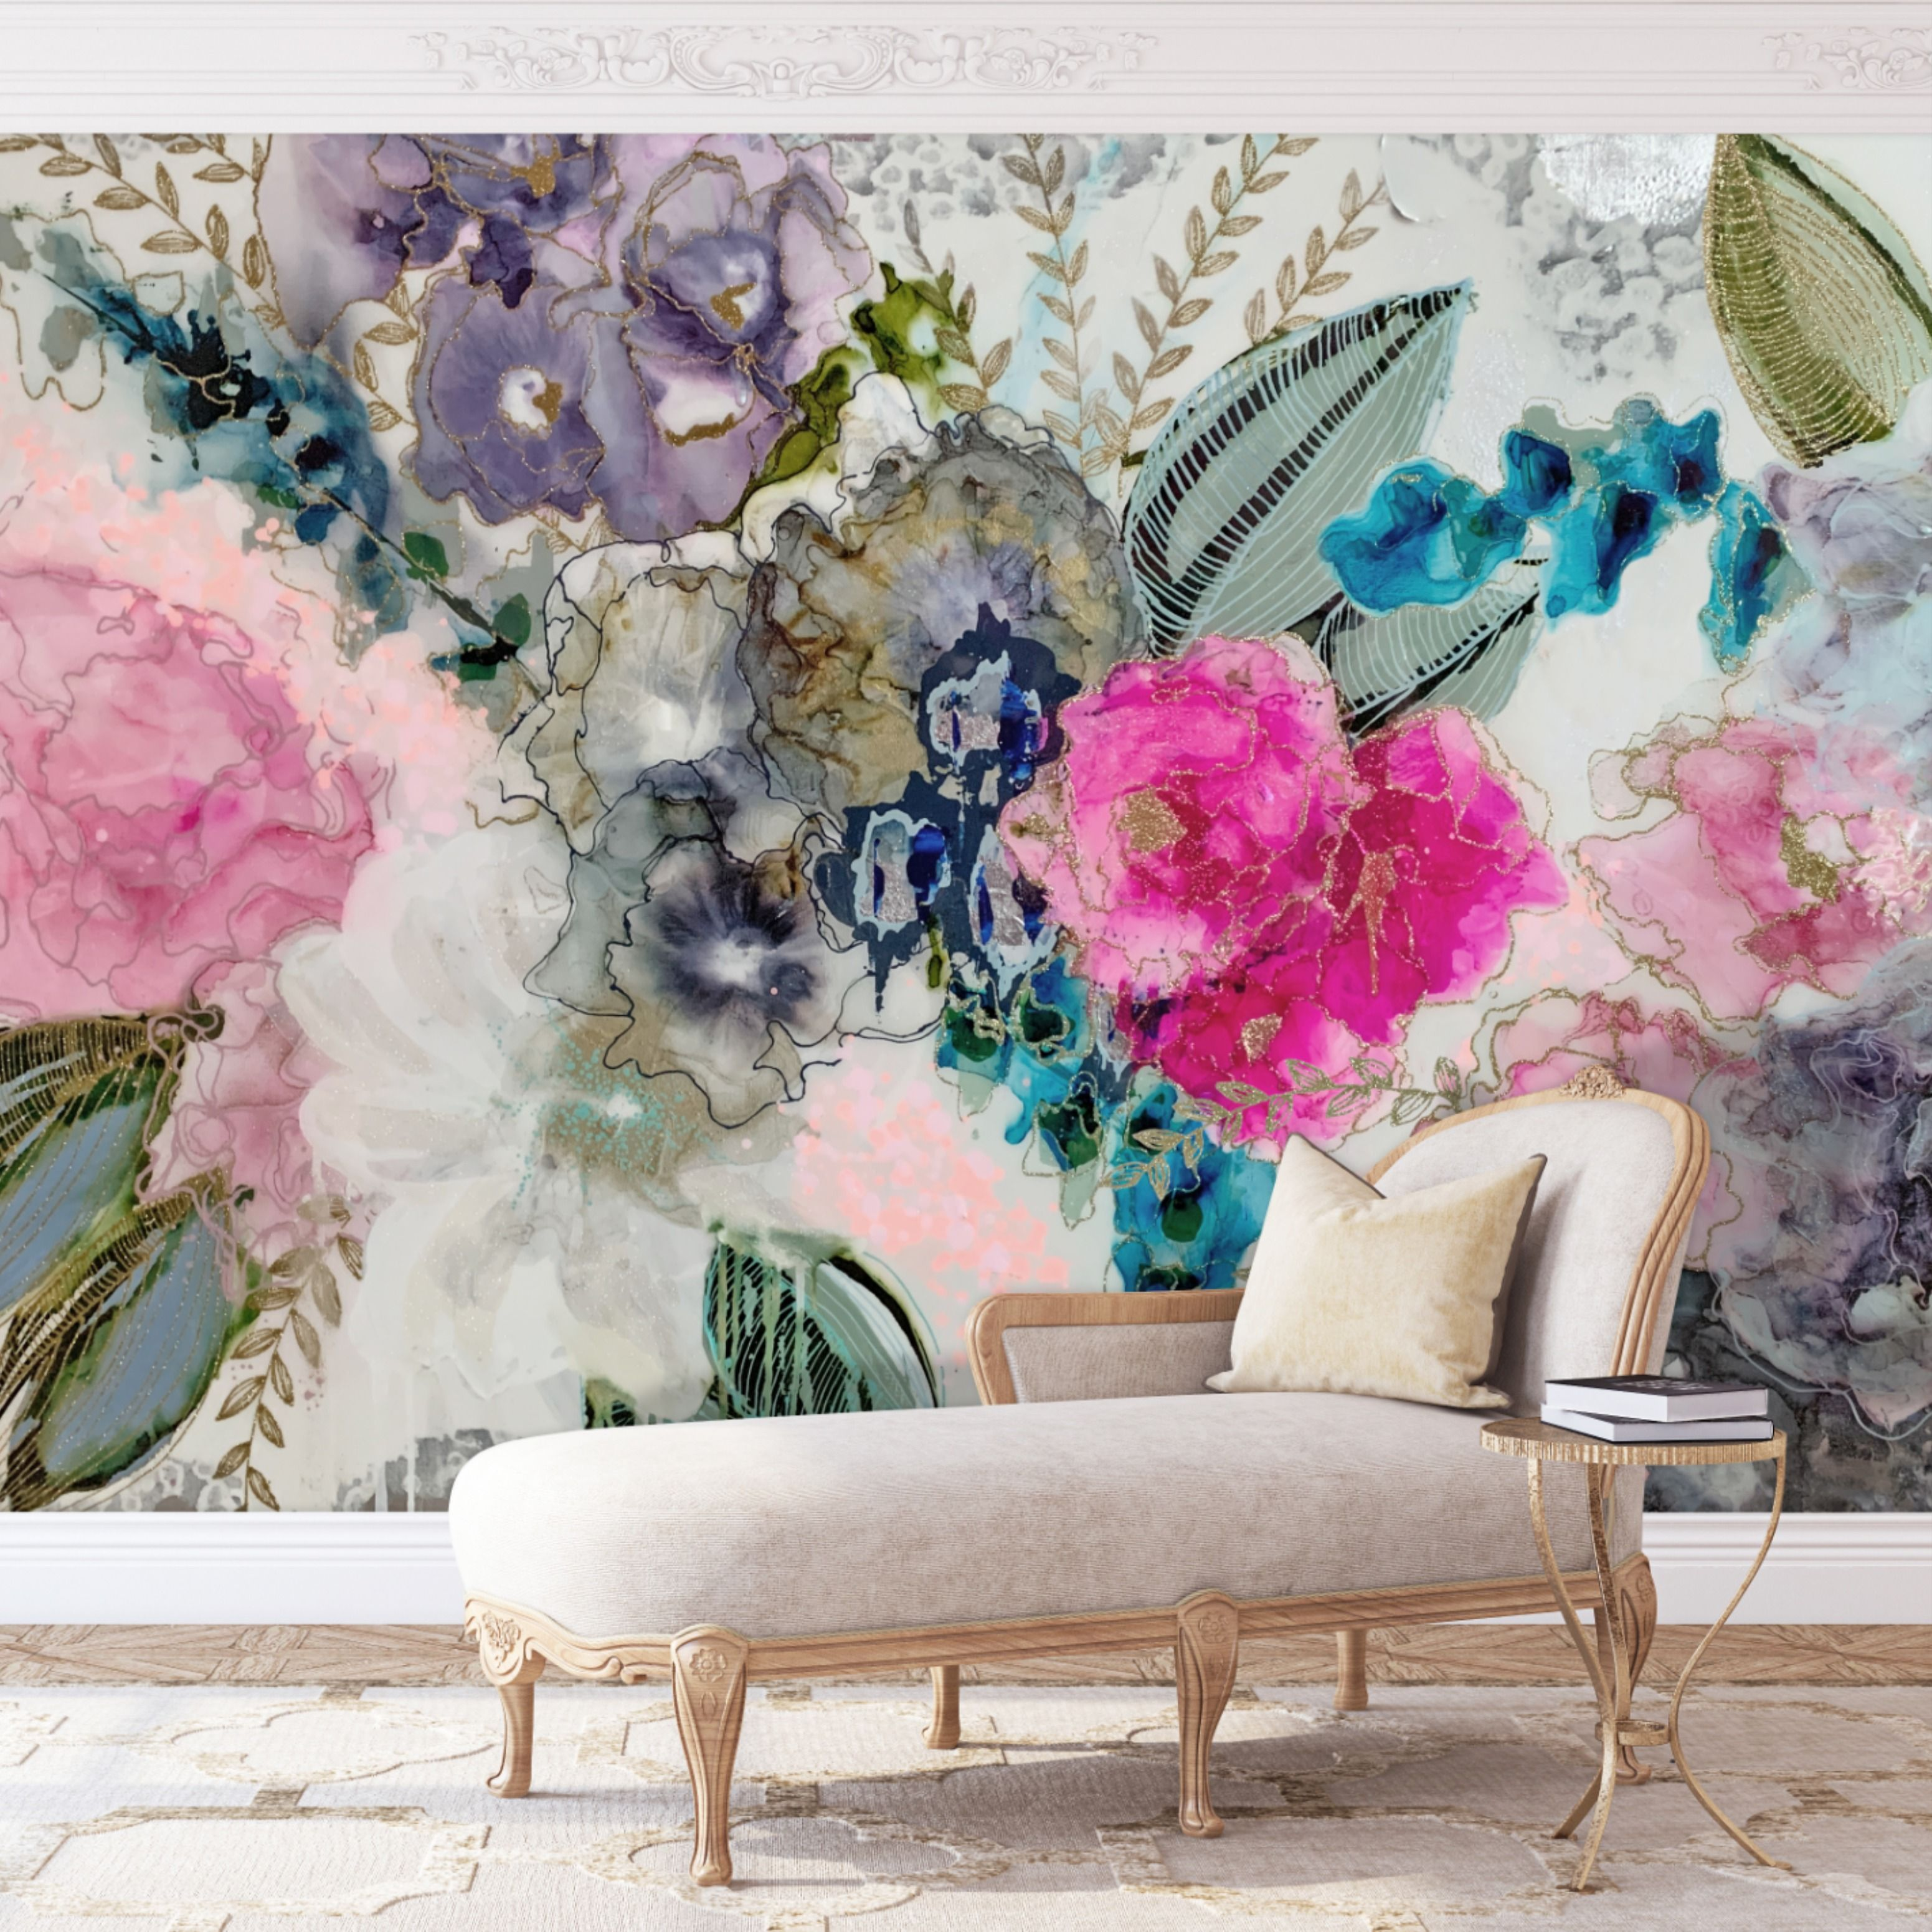 Wisteria Removable Wall Mural Floral Wall Mural Decal Etsy Wall Murals Removable Wall Murals Wall Mural Decals